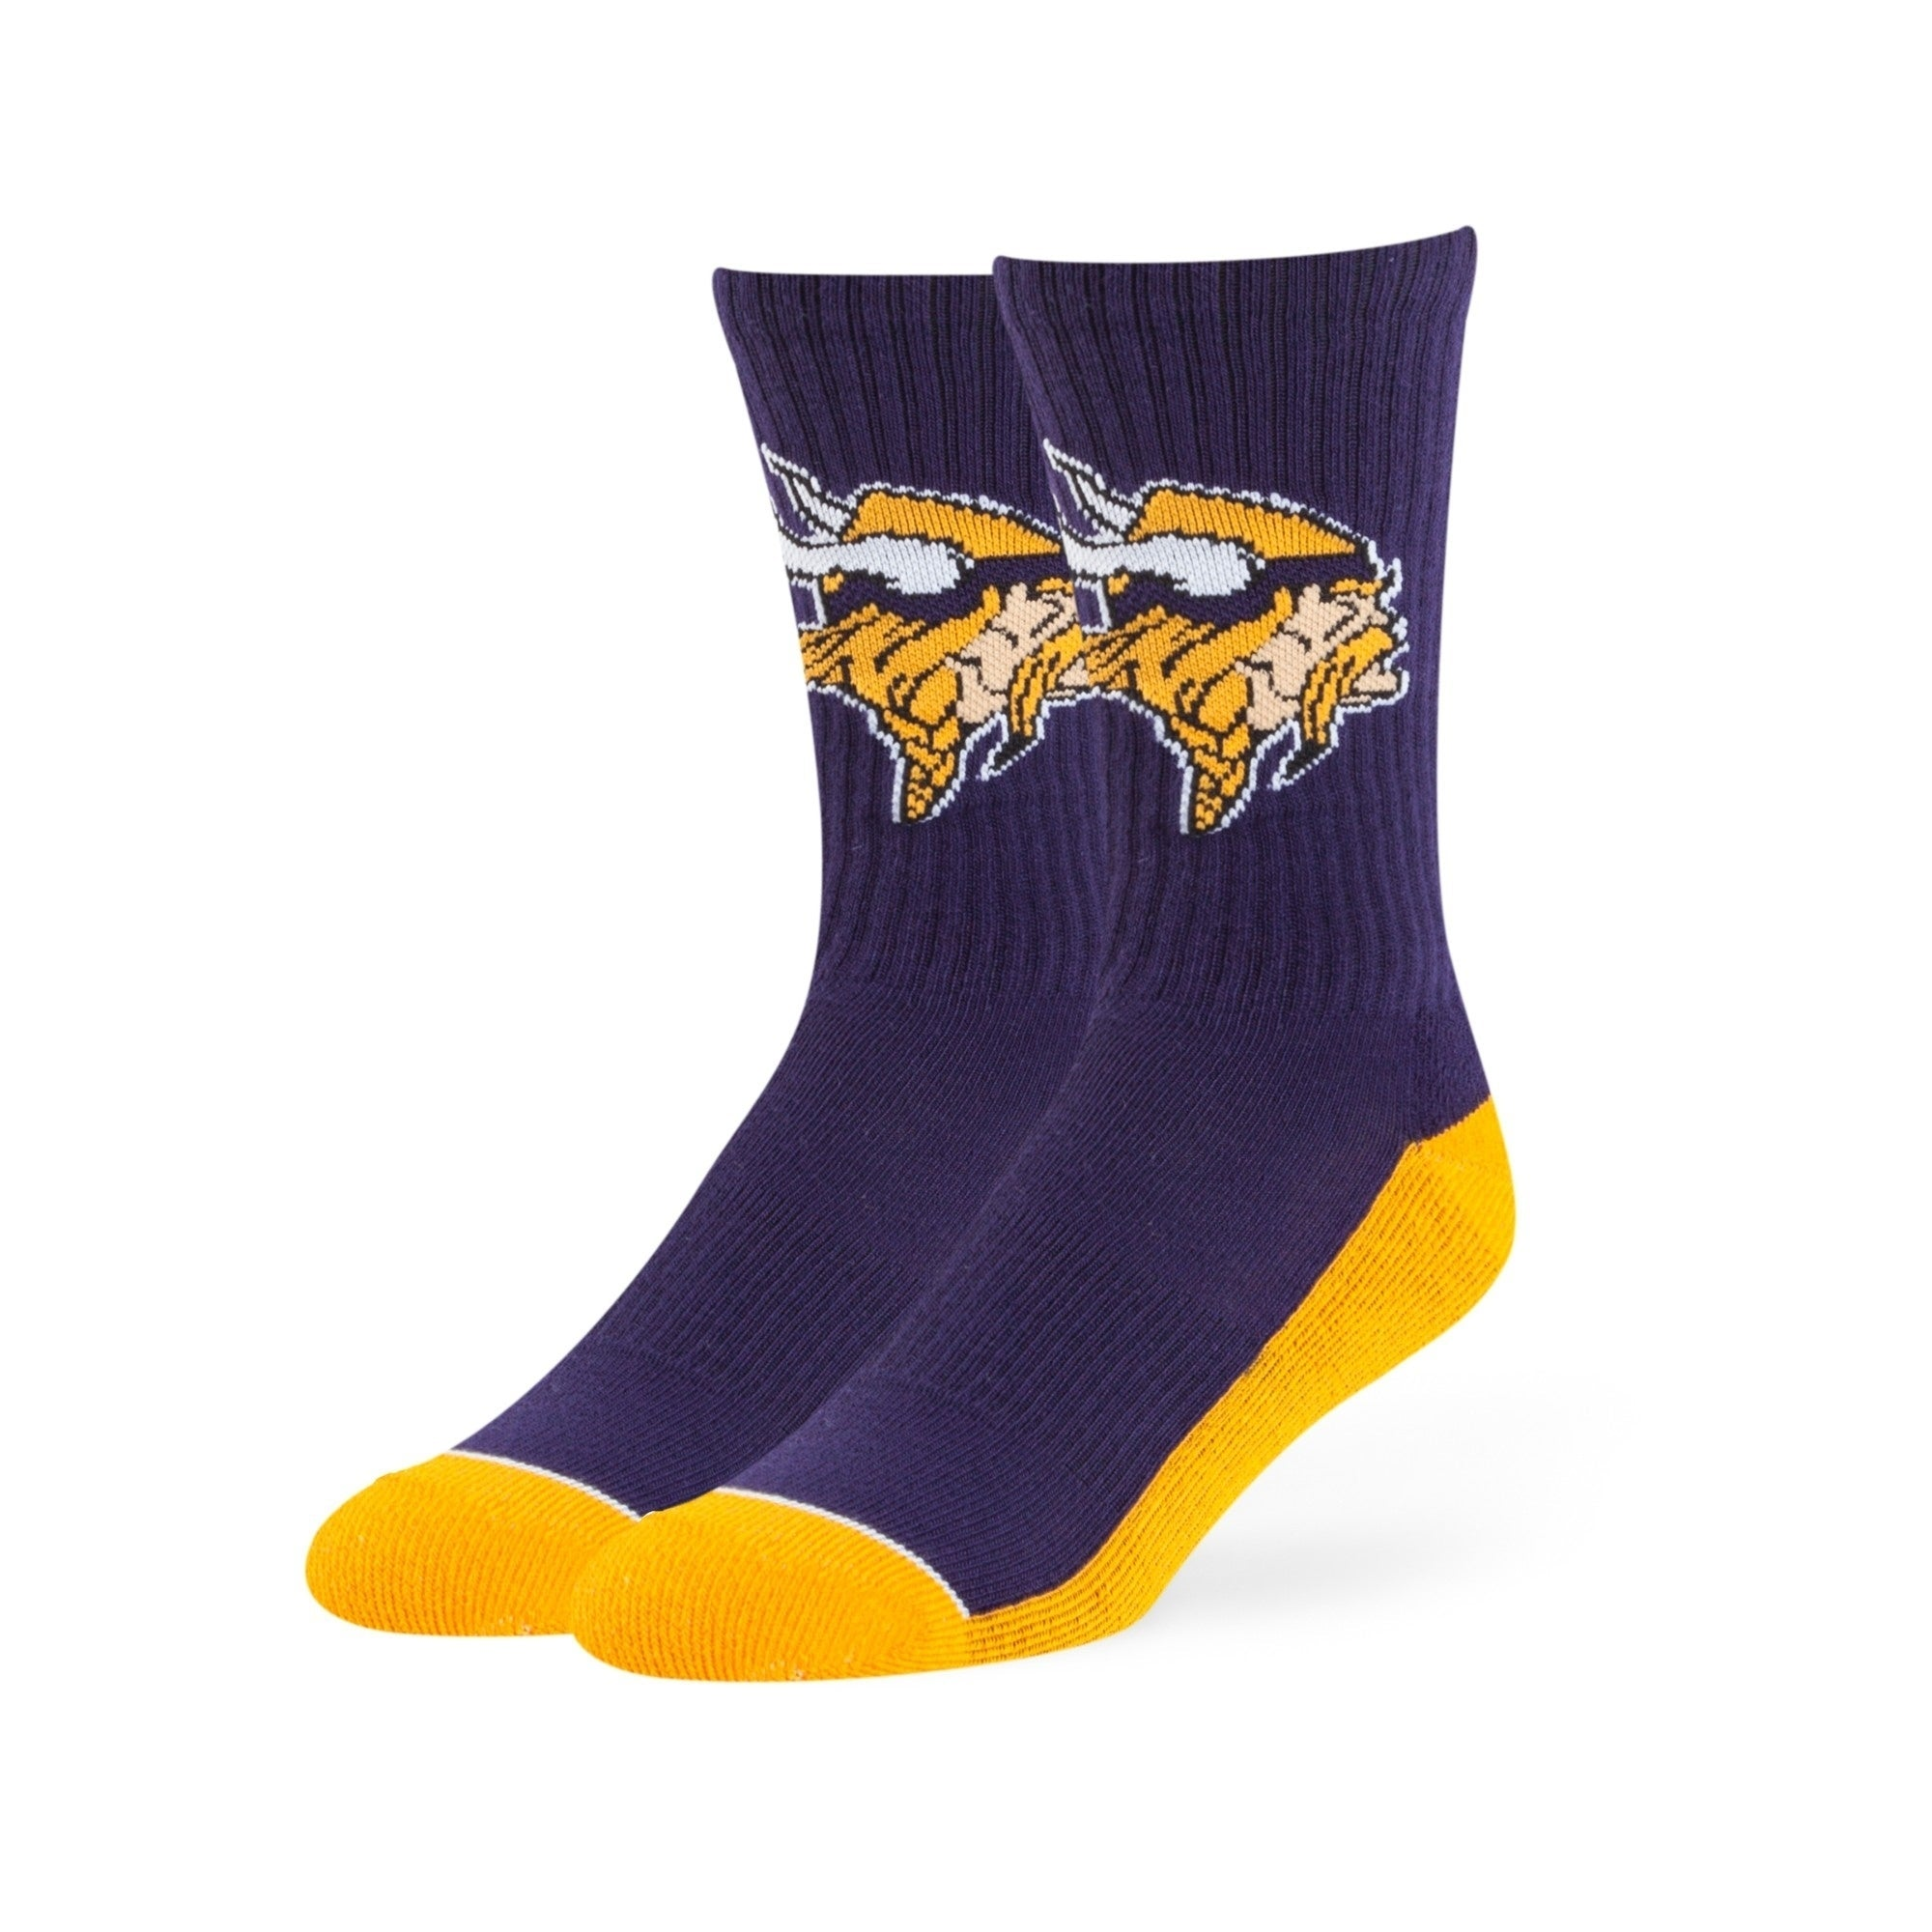 Minnesota Vikings Anthem Crew Socks - Diamond Home USA